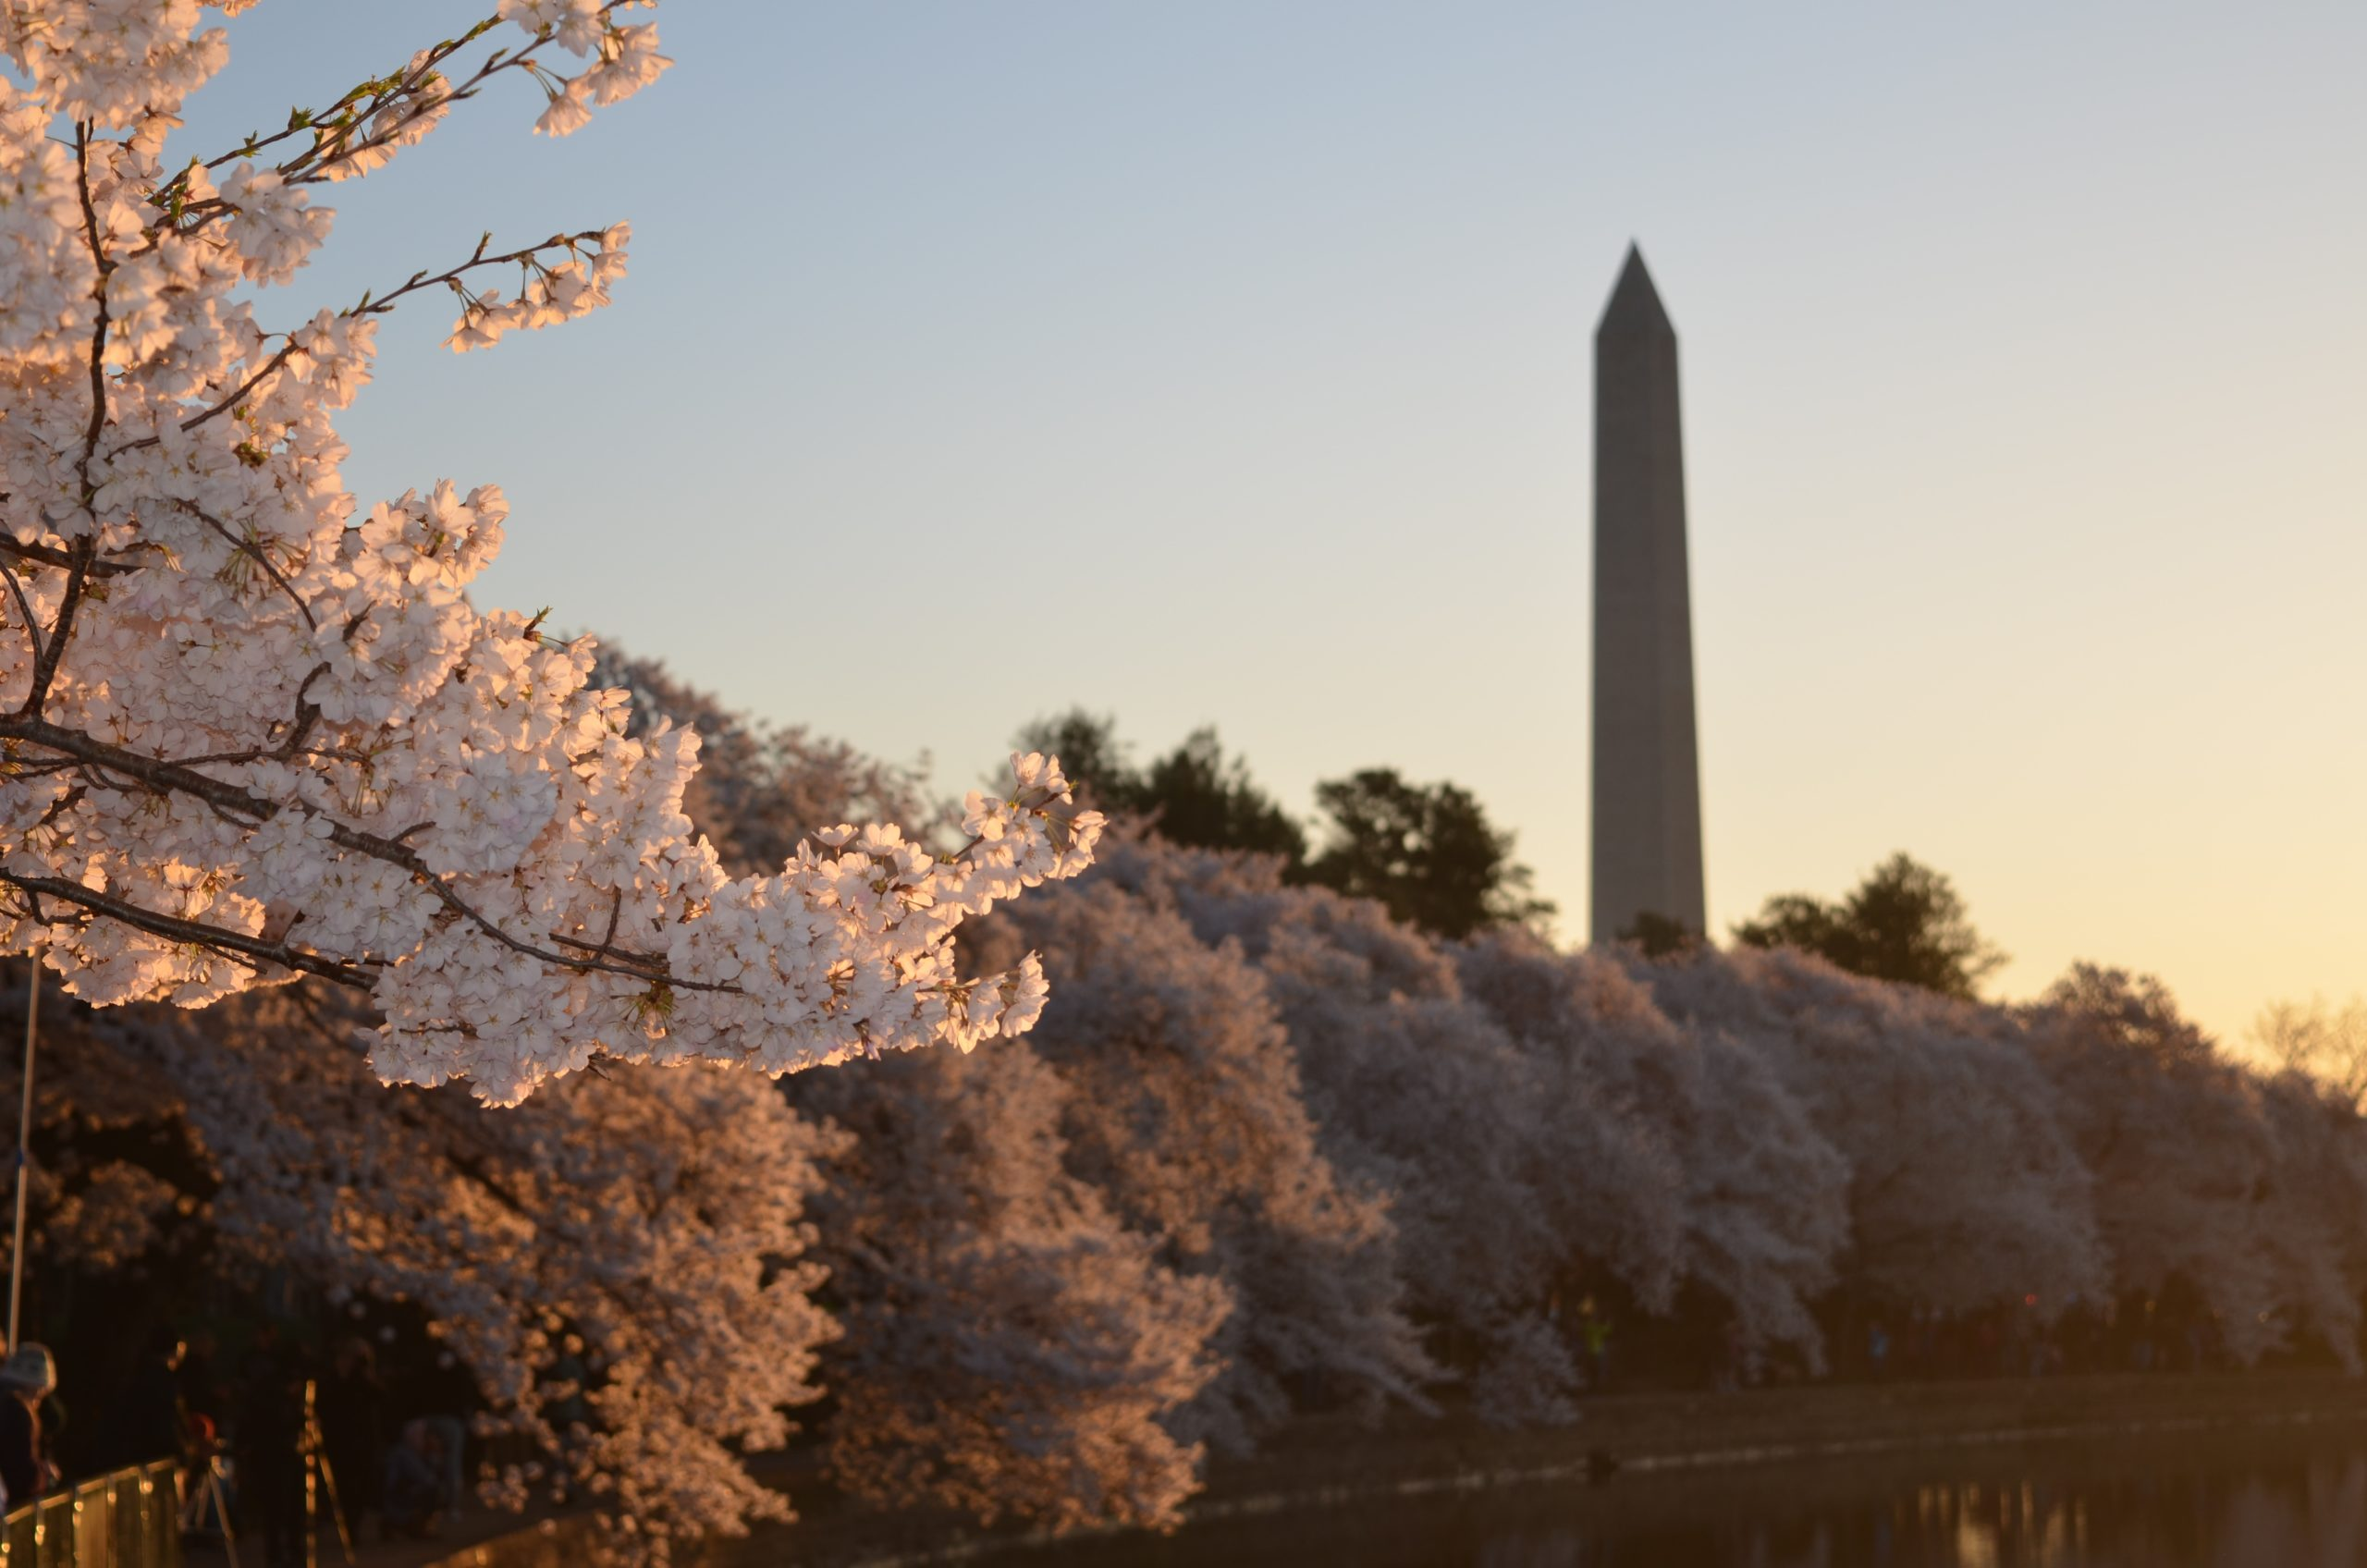 The Washington monument is visible in the sky behind rows of trees with light pink blossoms.